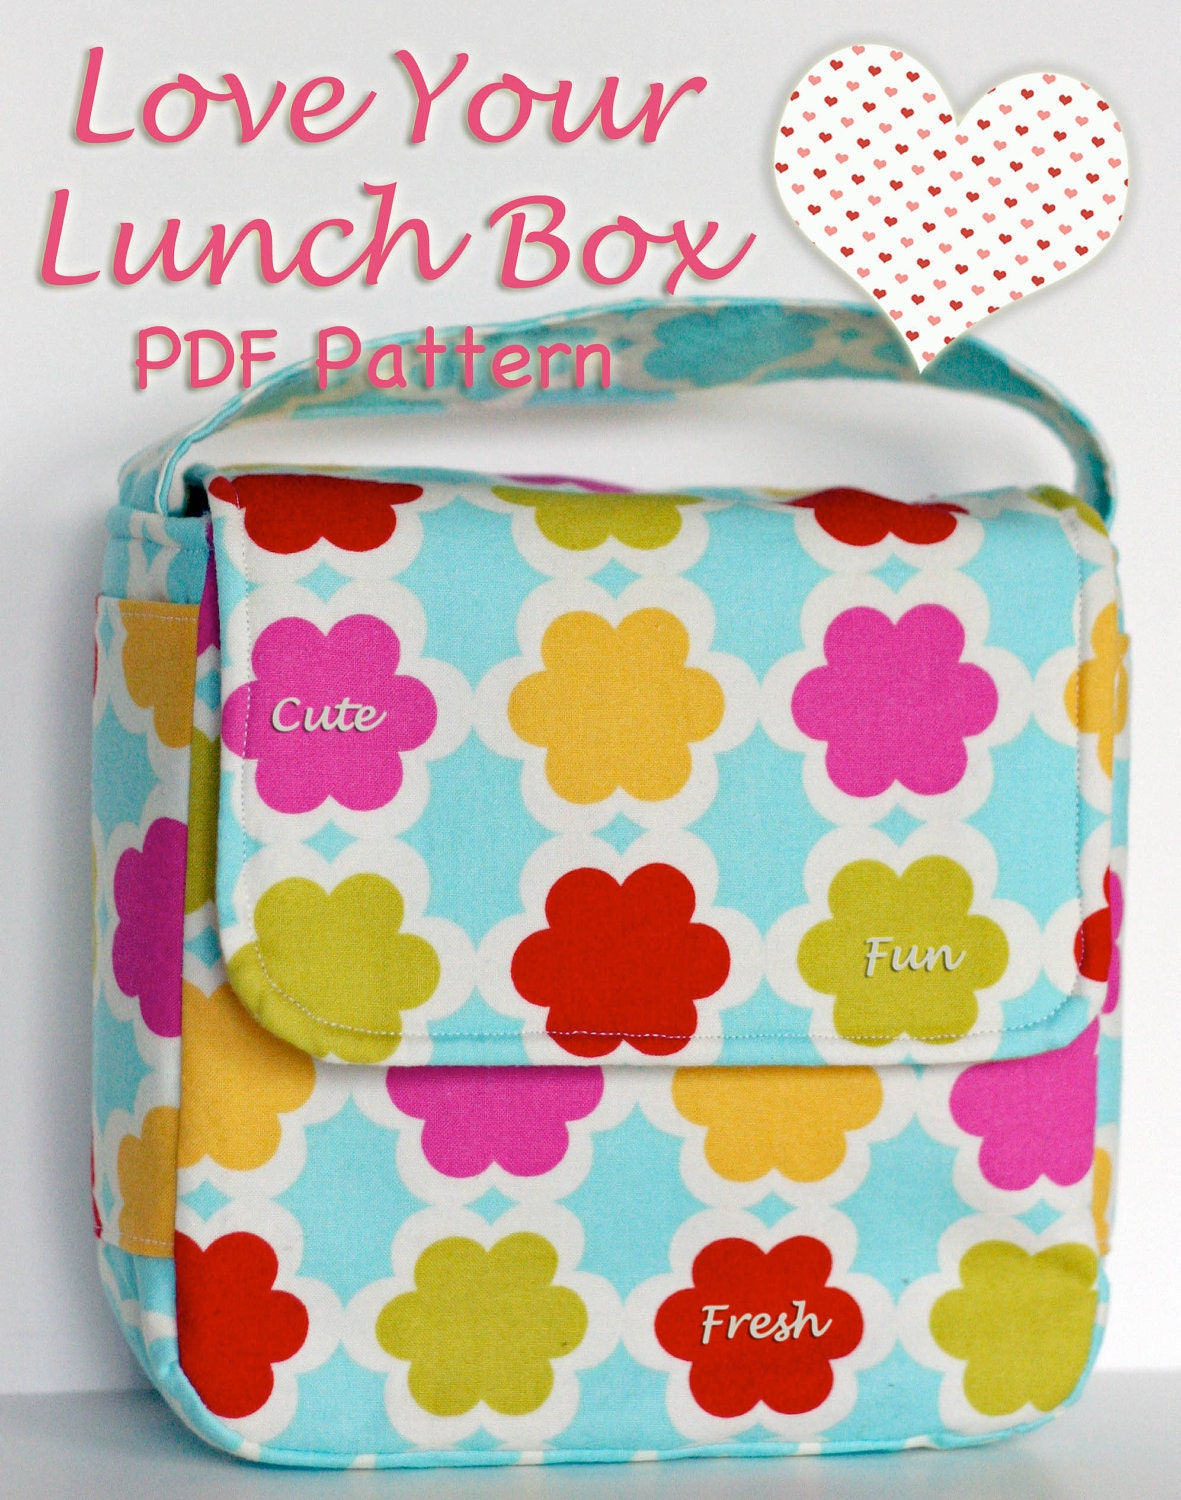 Lunch box sewing pattern pdf love your